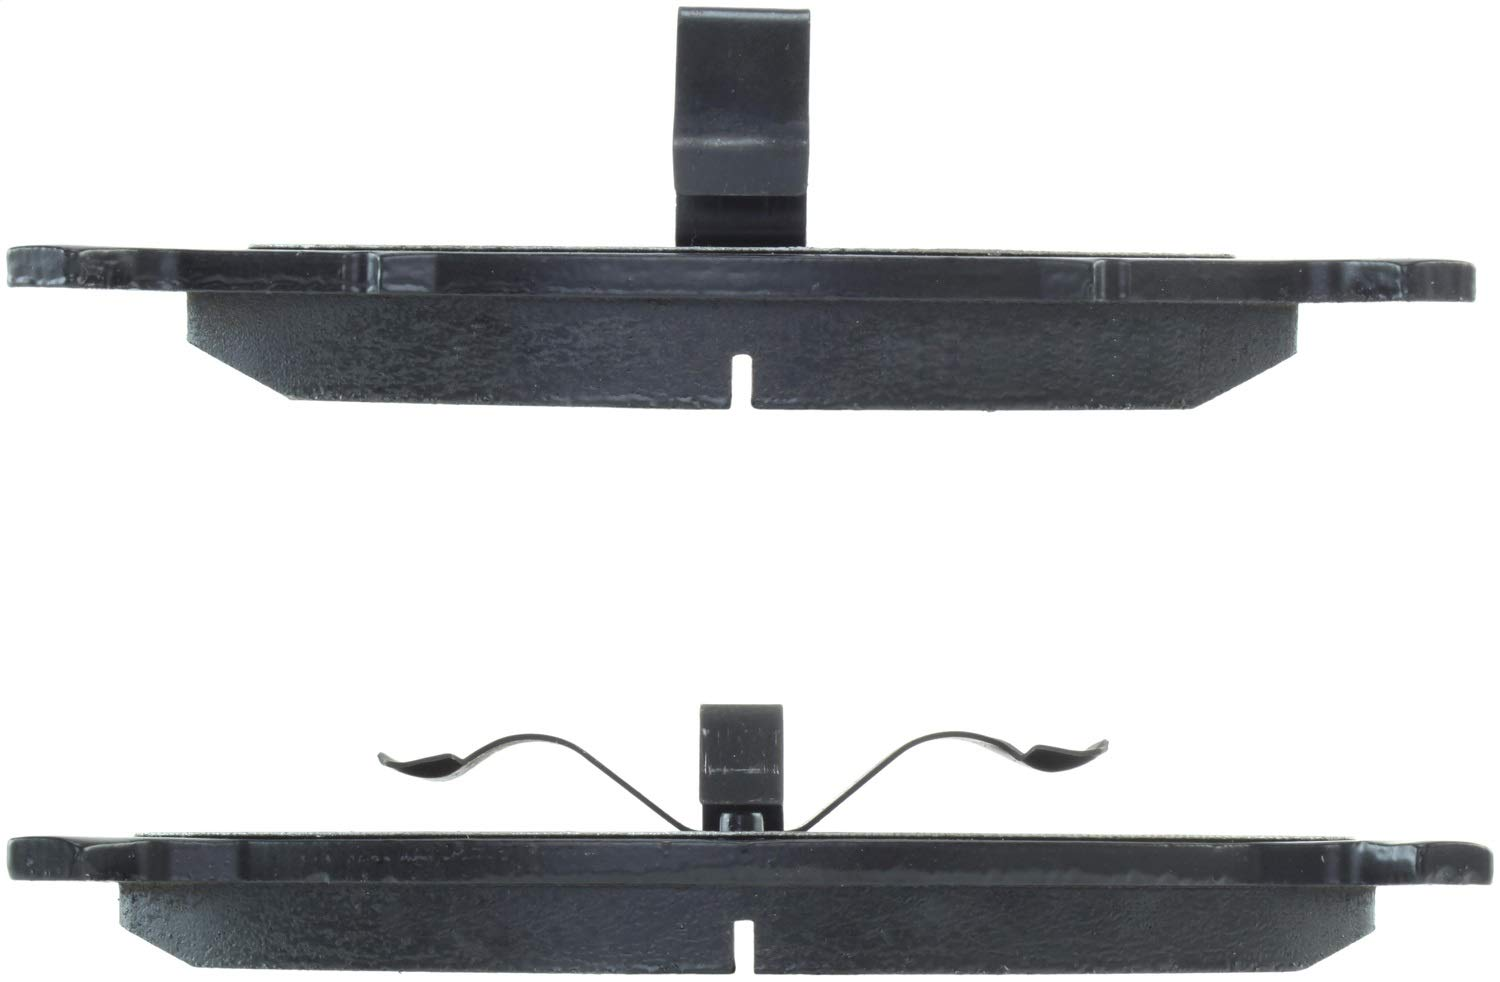 StopTech 308.07300 Street Brake Pads; Front with Shims and Hardware